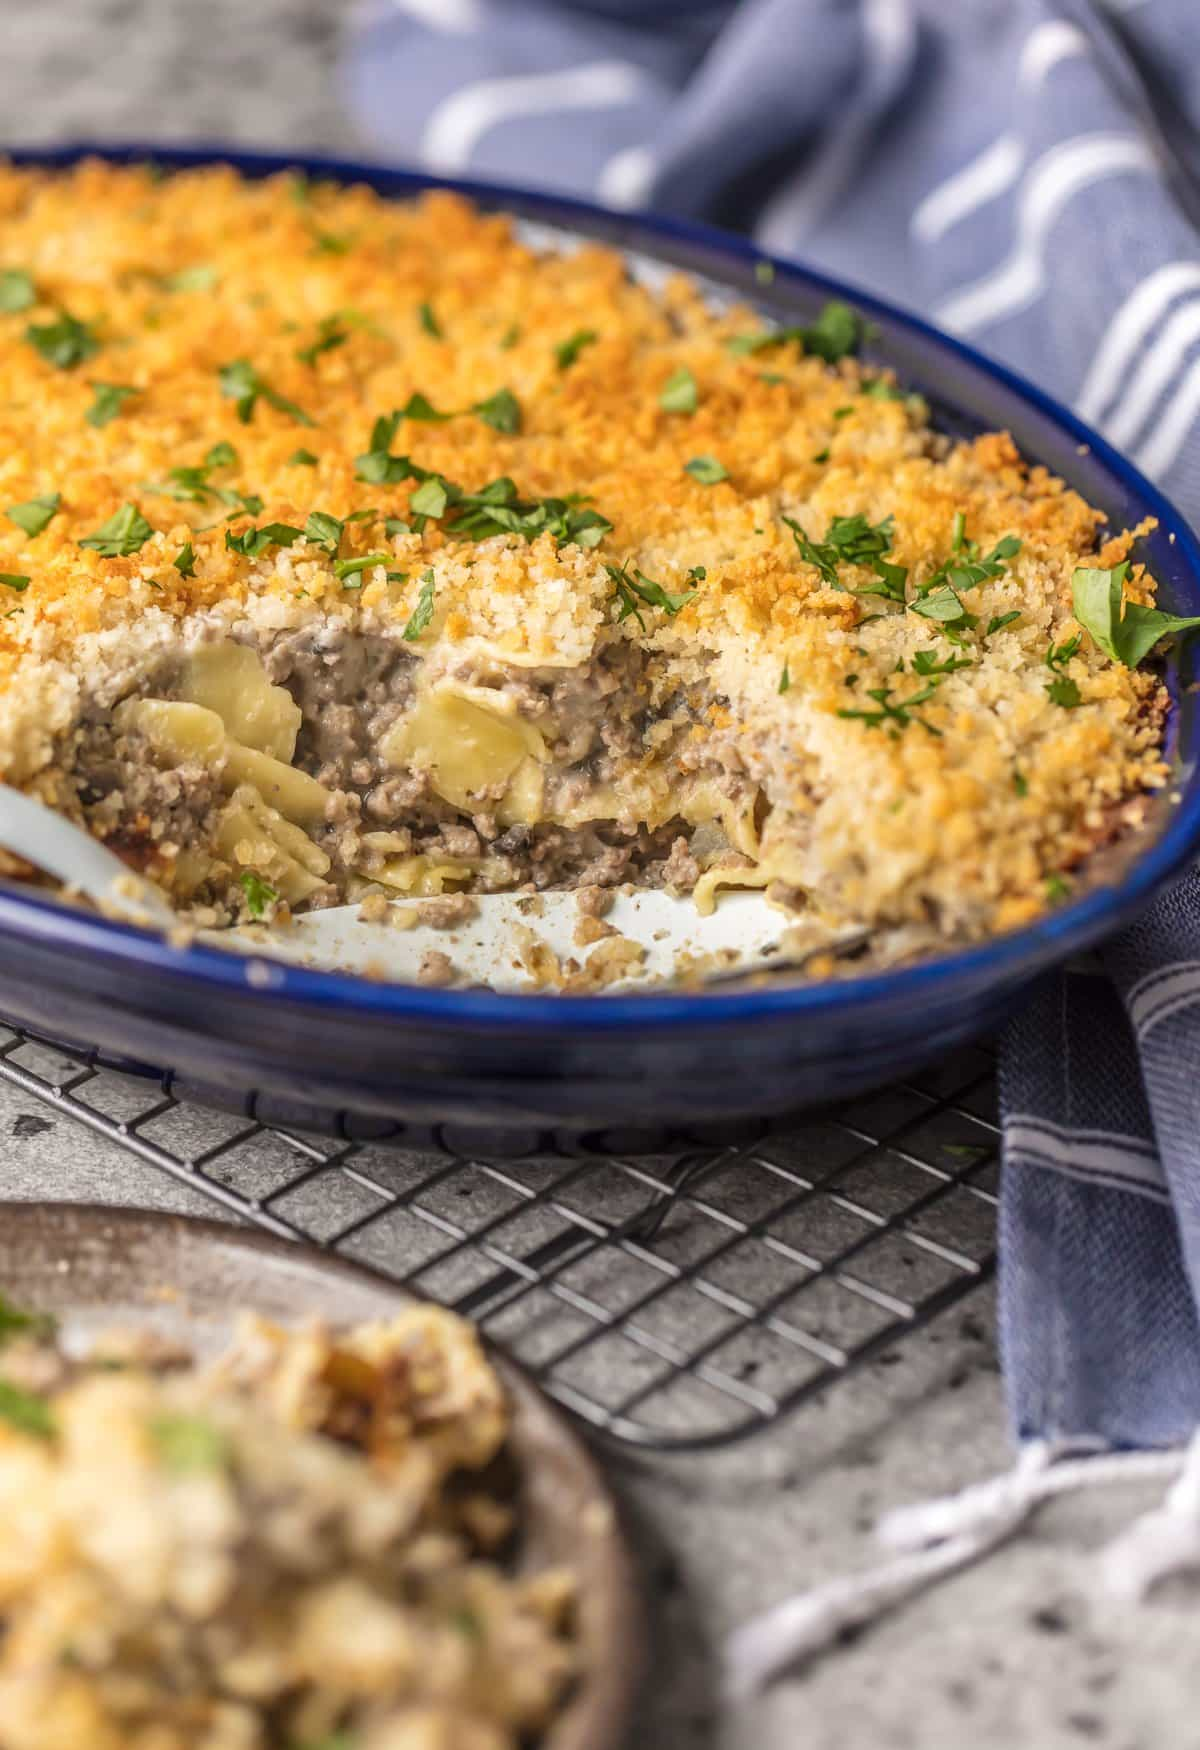 Casserole with a spoonful take out of it